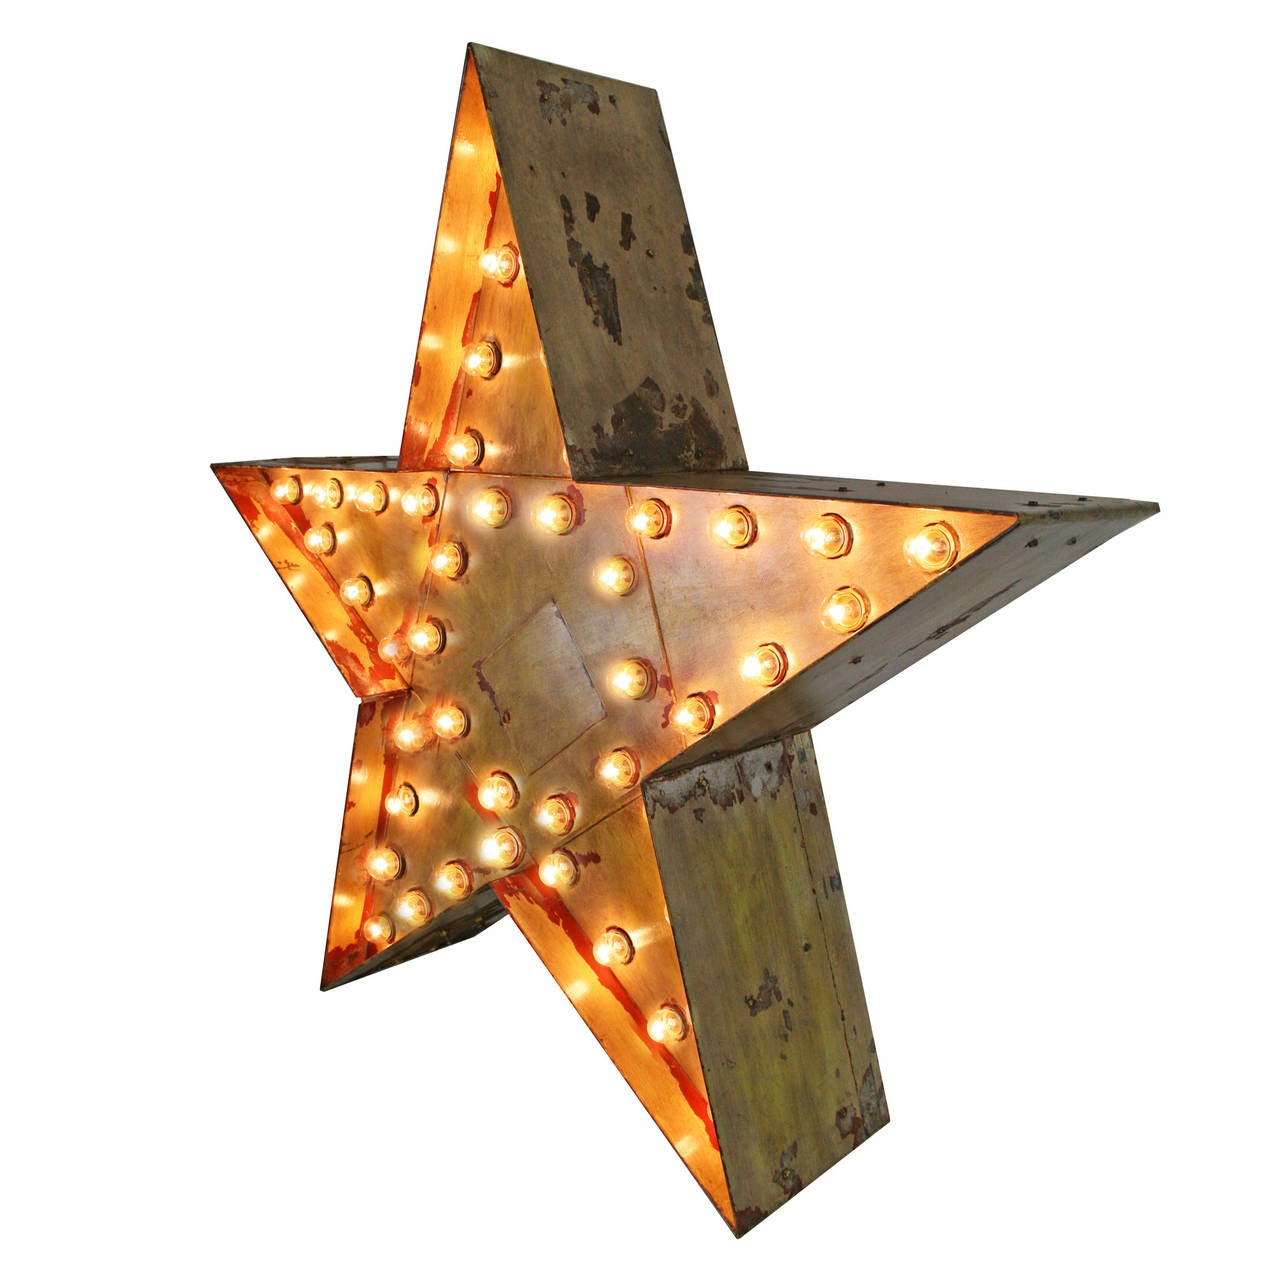 Your house will be the brightest on the block when adorned with this Classic 4-foot tall lighted star. Originally, it would have decorated the entrance to a carnival or park ground, but we can easily imagine it on the roof of Clark Griswold's